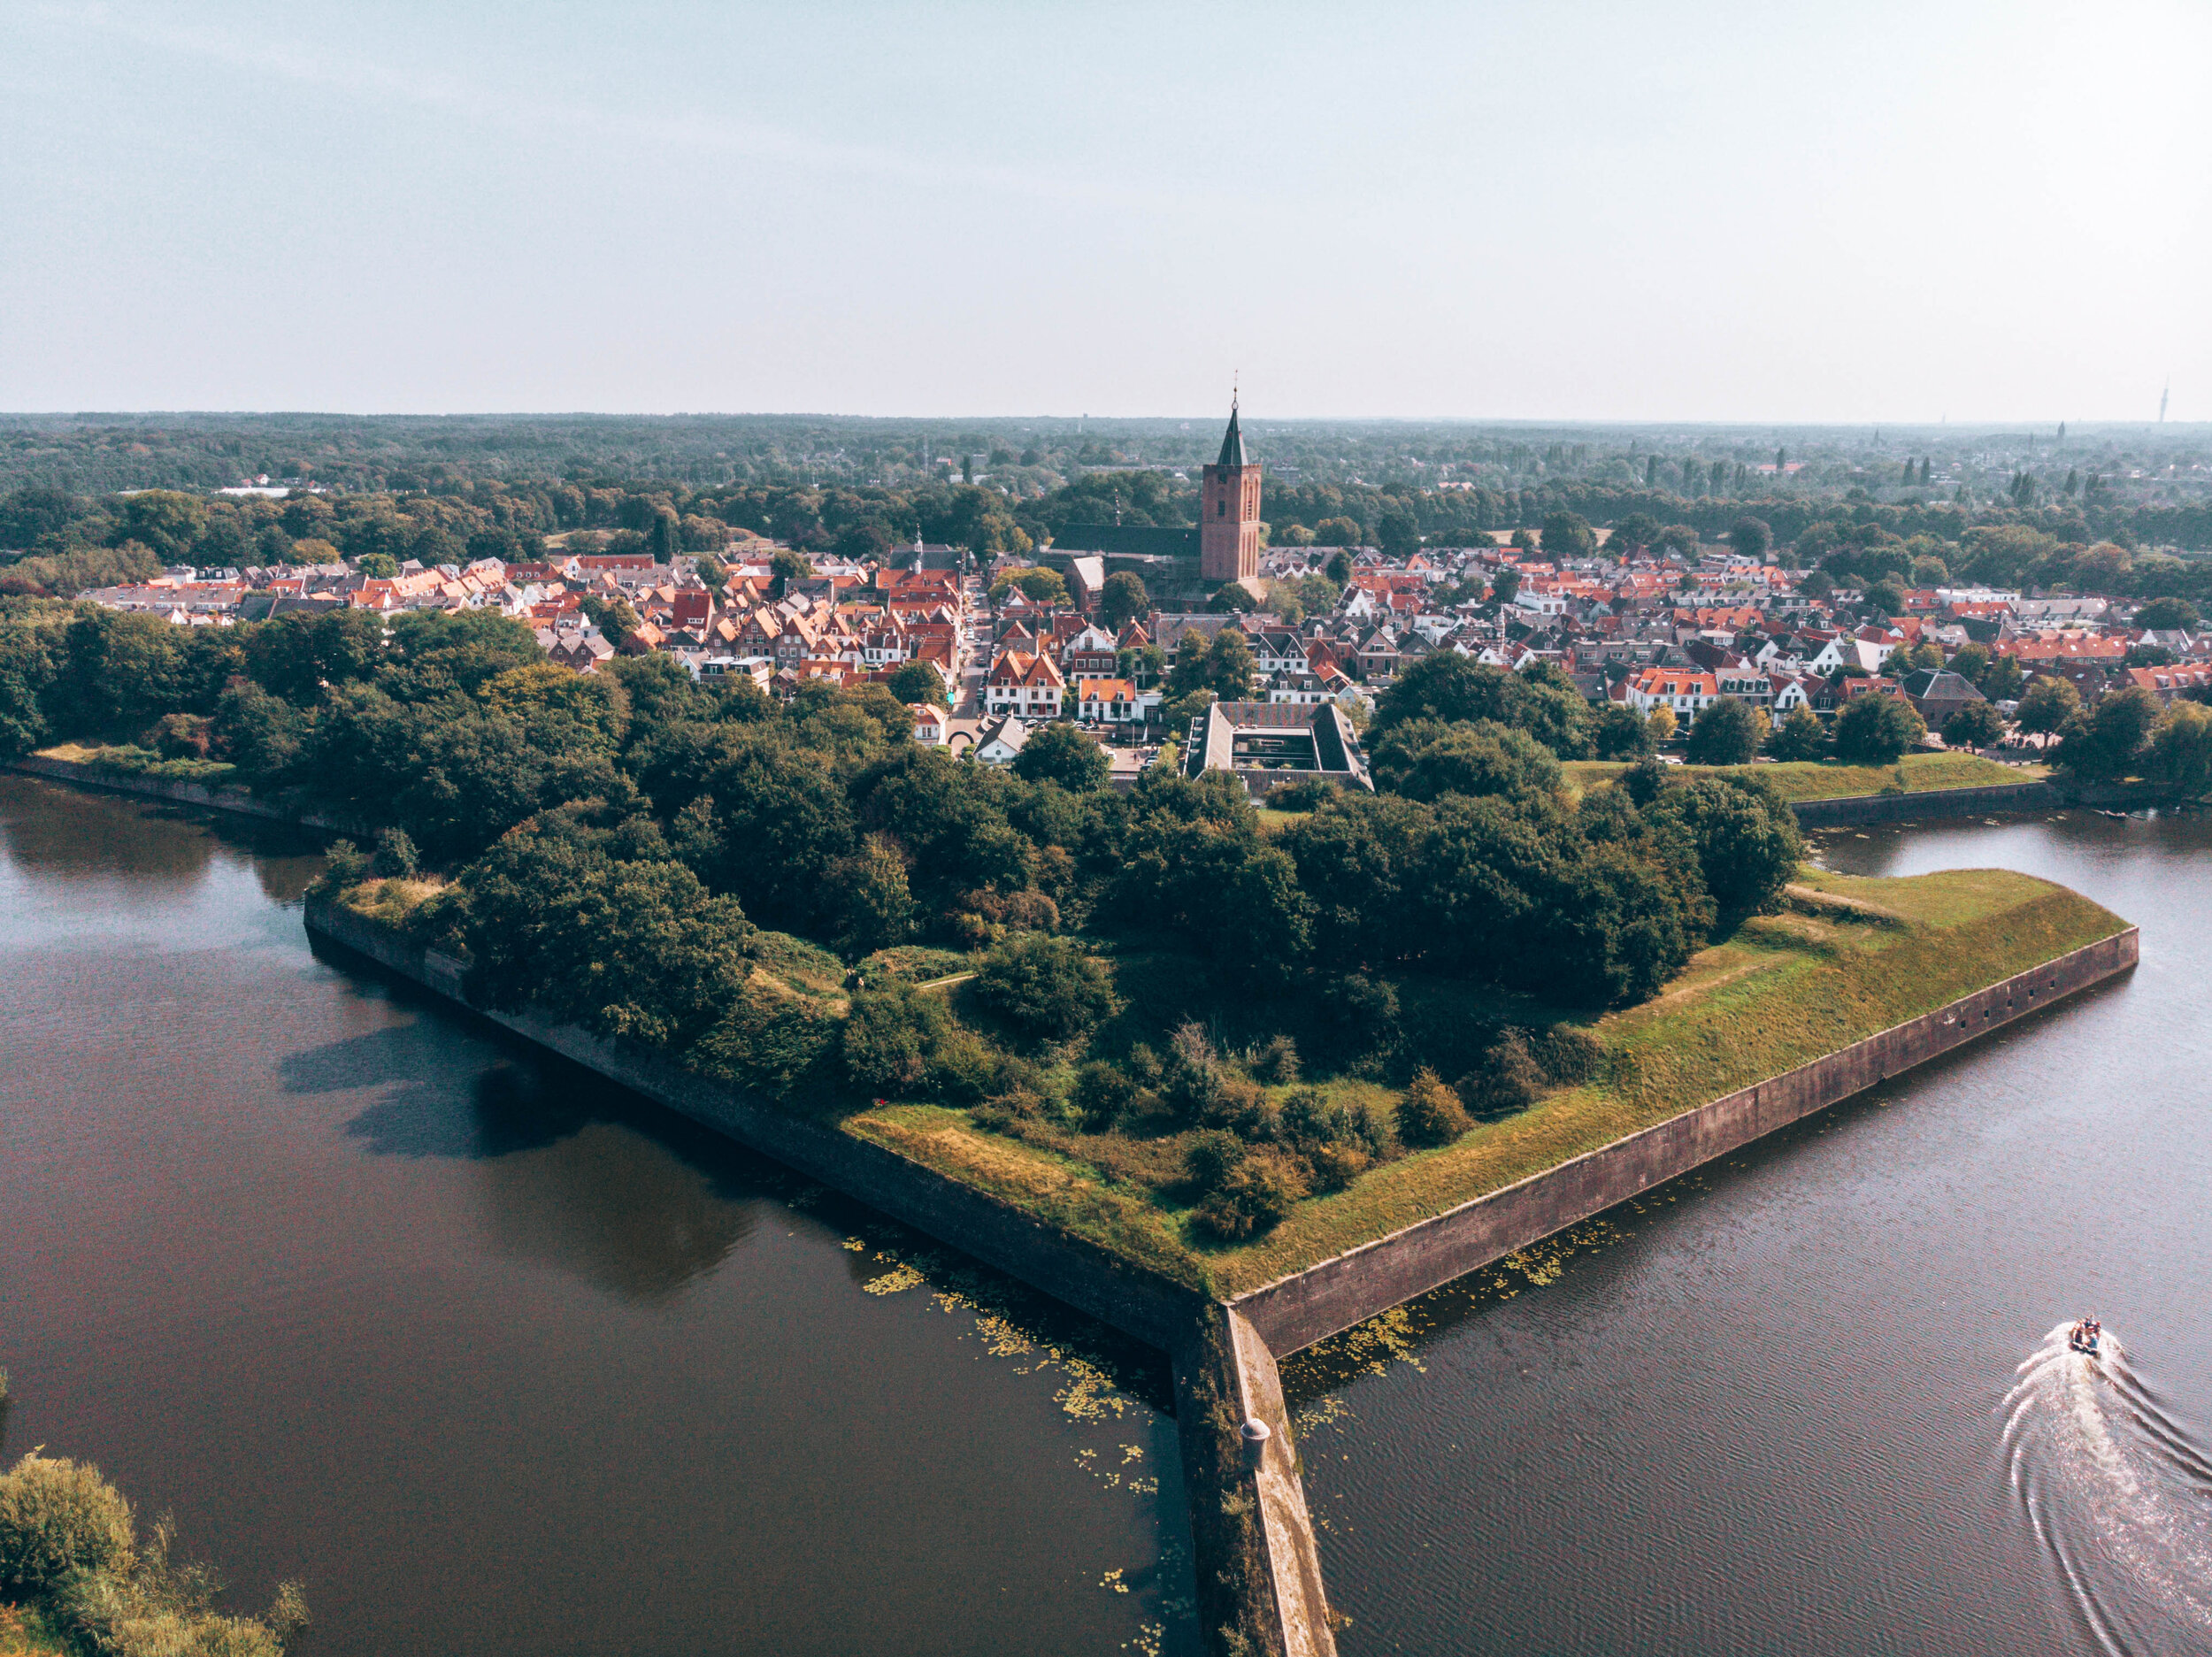 Drone SHot Naarden Vesting Low Travel drone photography guide for beginners